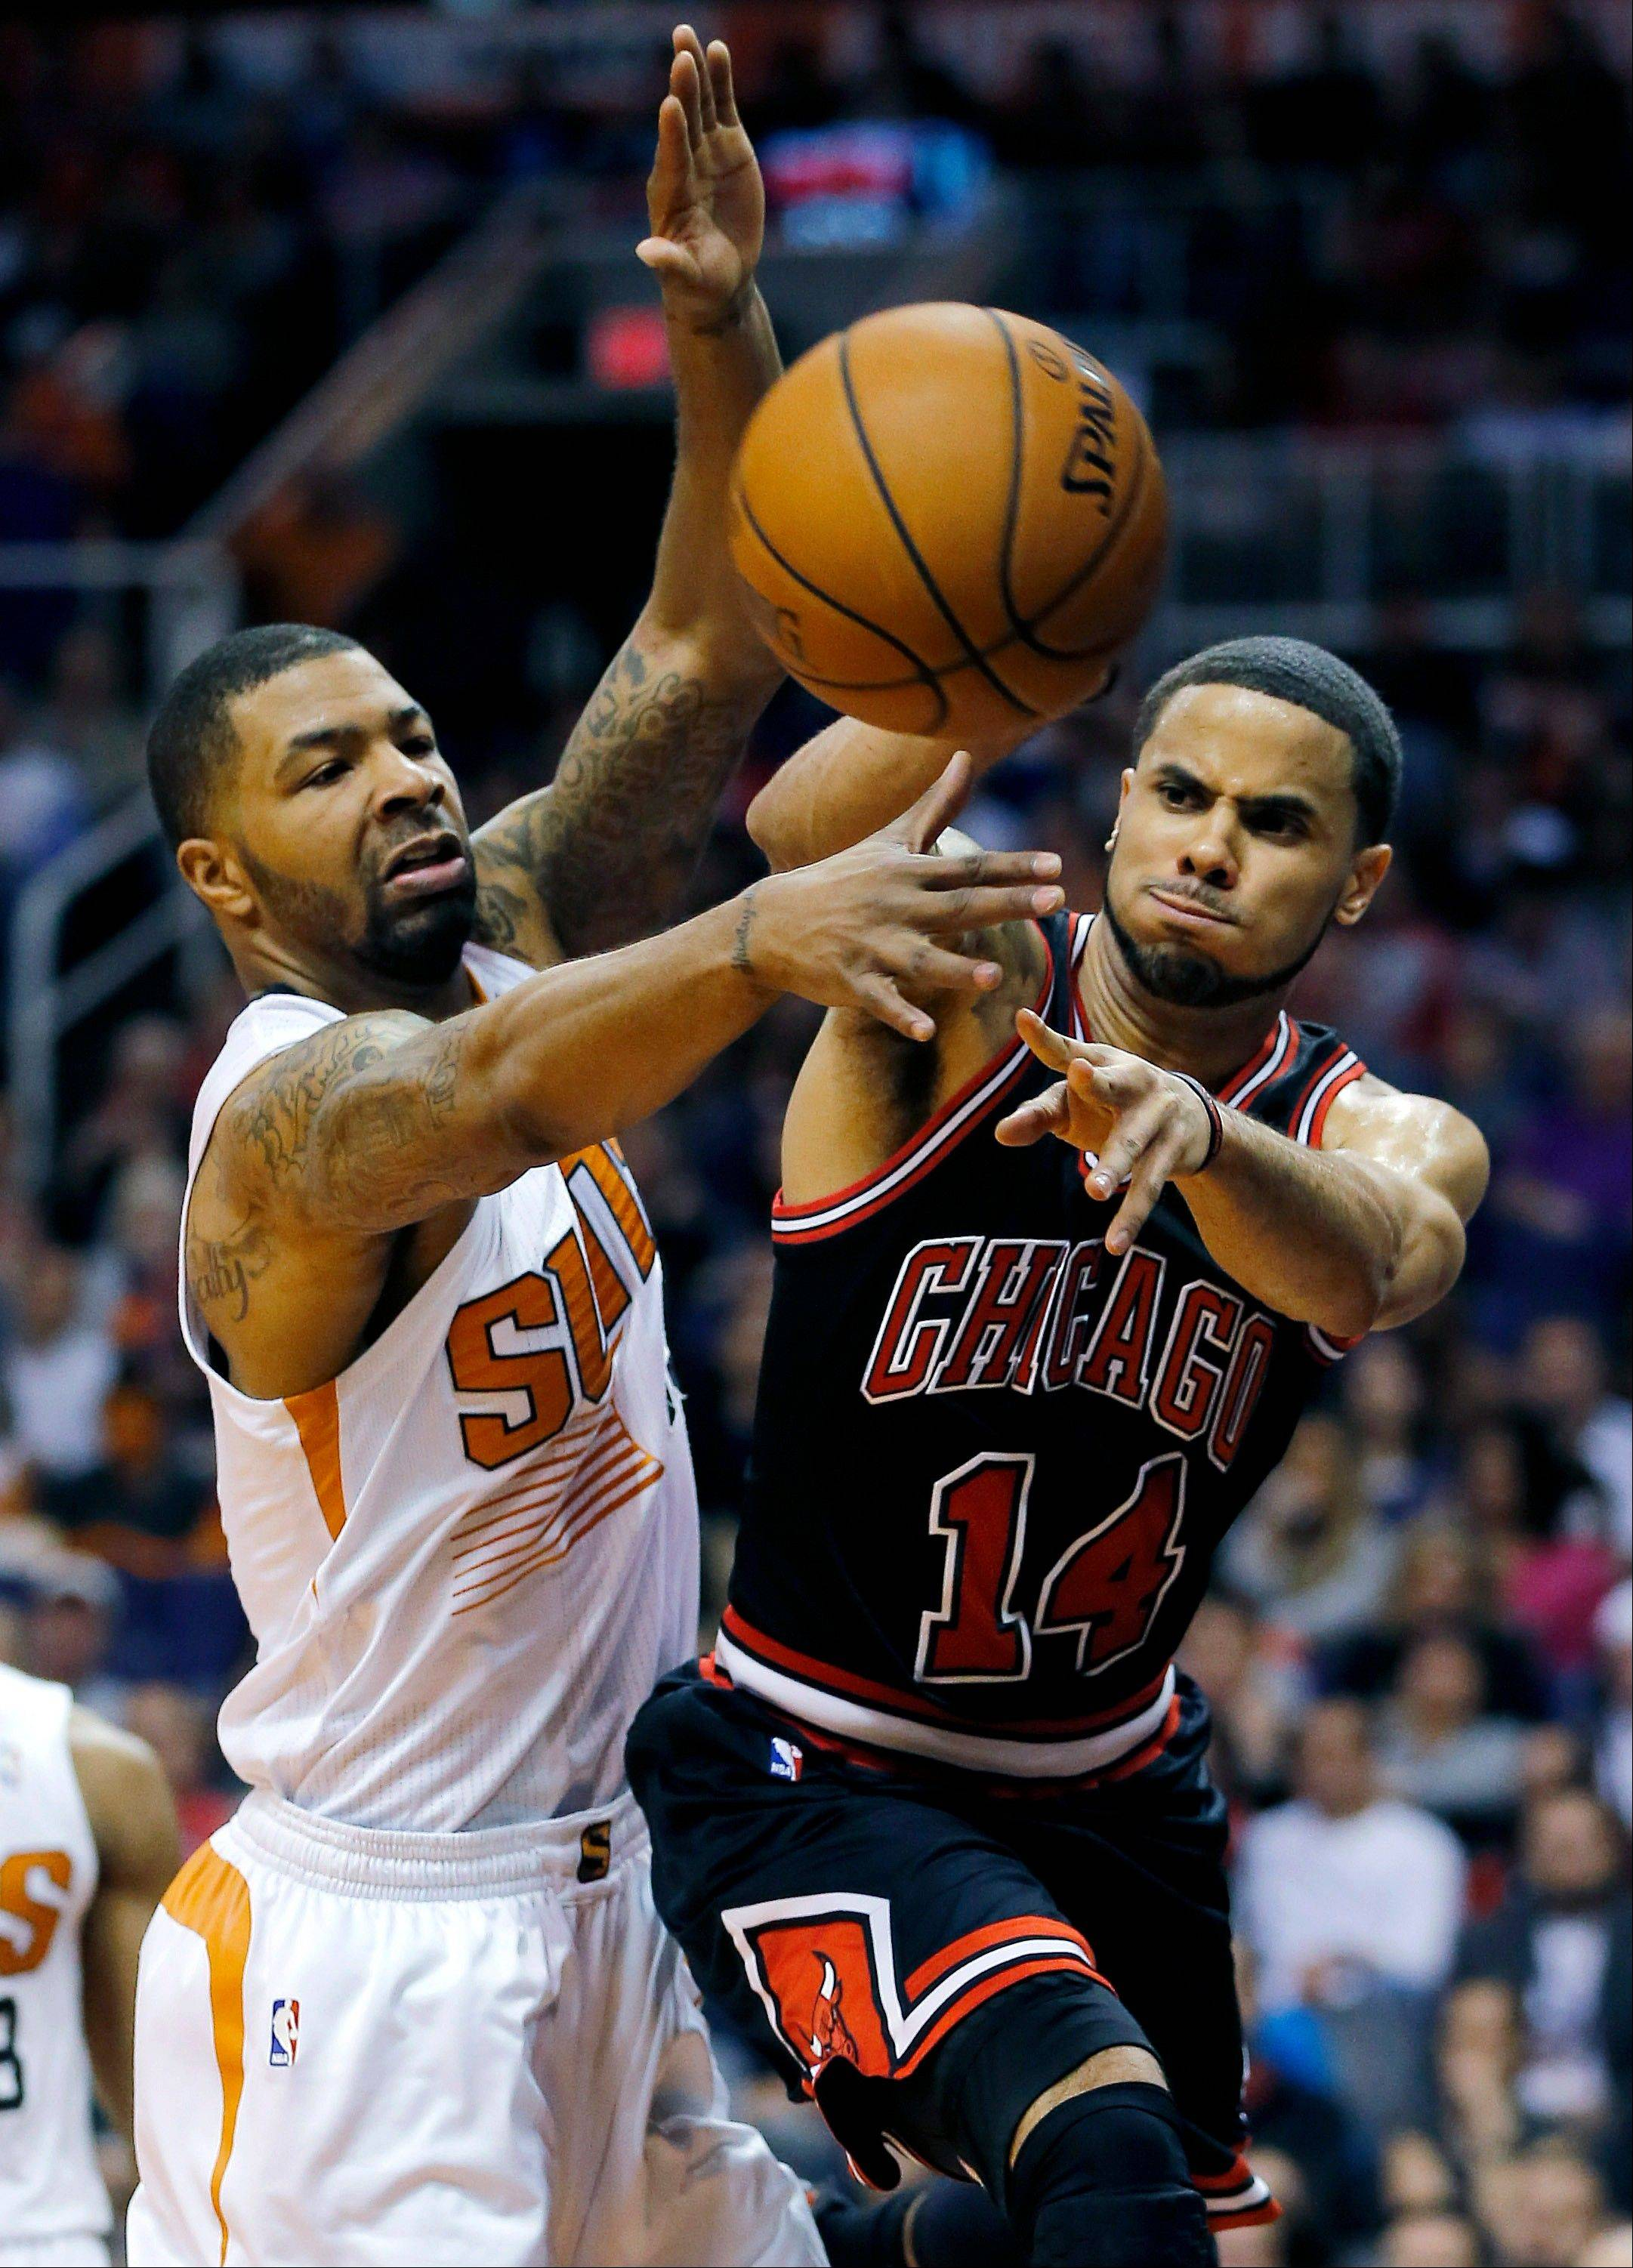 Bulls guard D.J. Augustin passes around the Suns� Markieff Morris during the first half Tuesday night. Augustin finished with 18 points in the Bulls� victory.